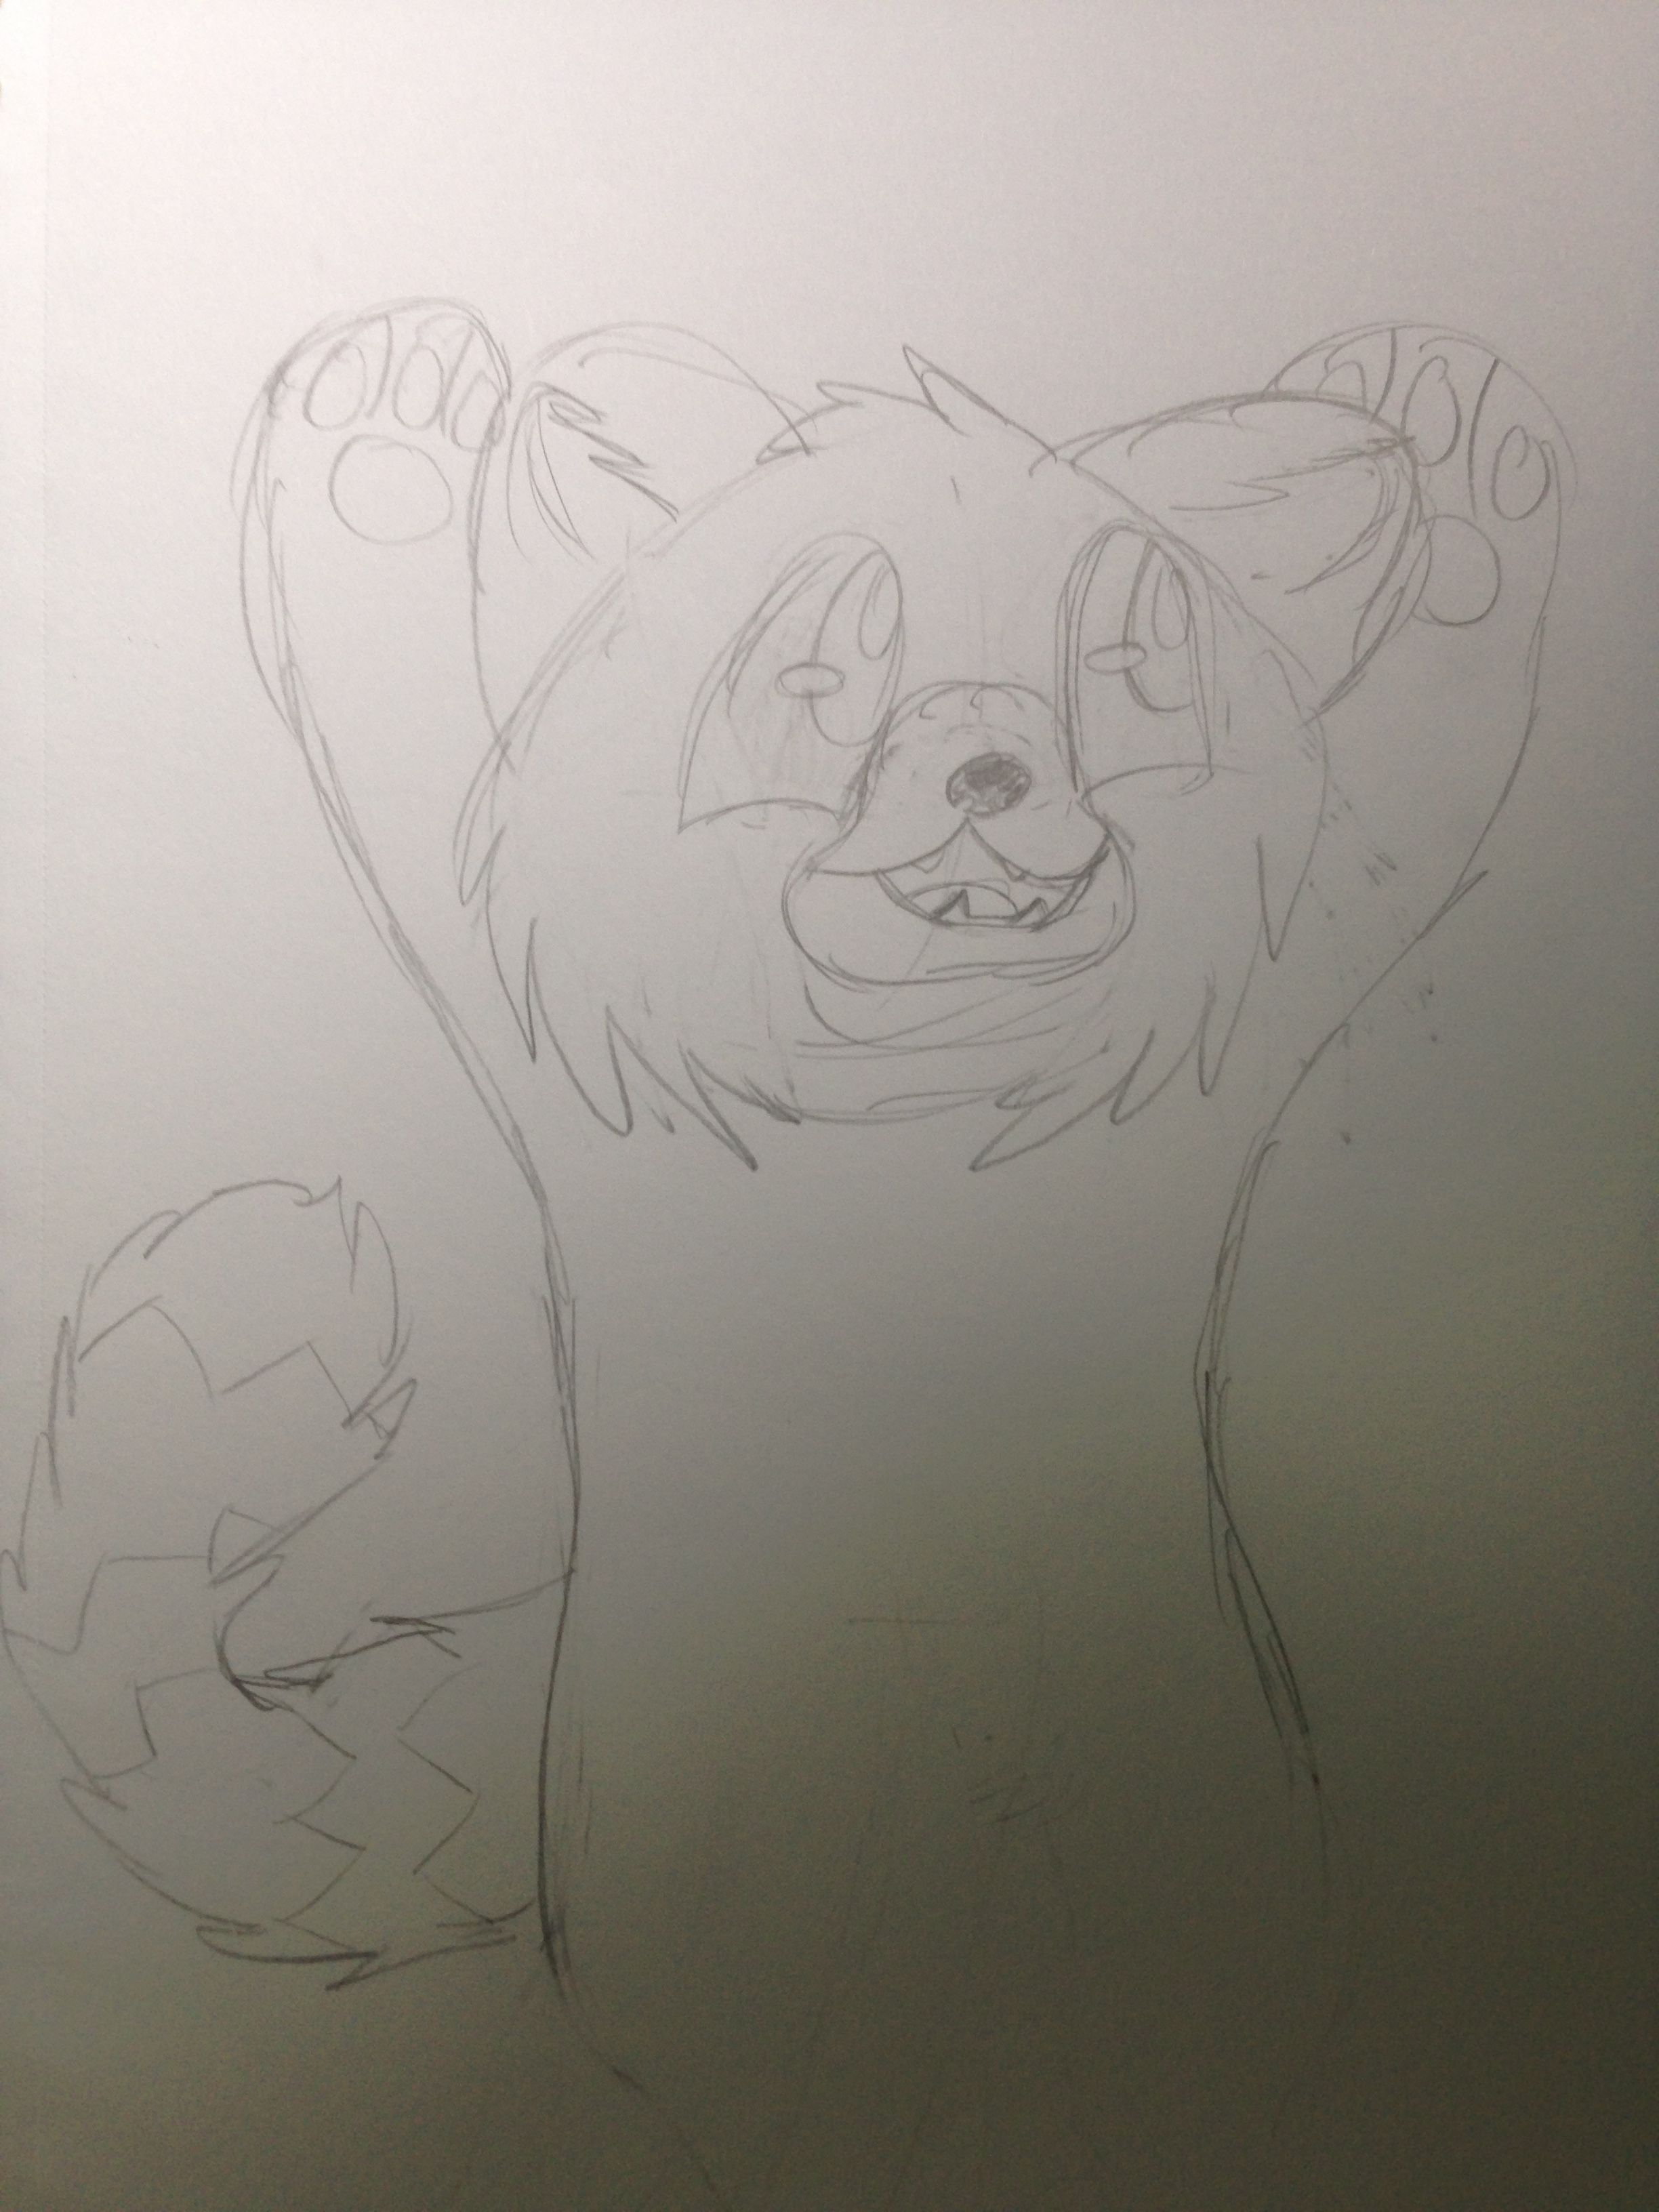 [No Name] Unfinished red panda dude